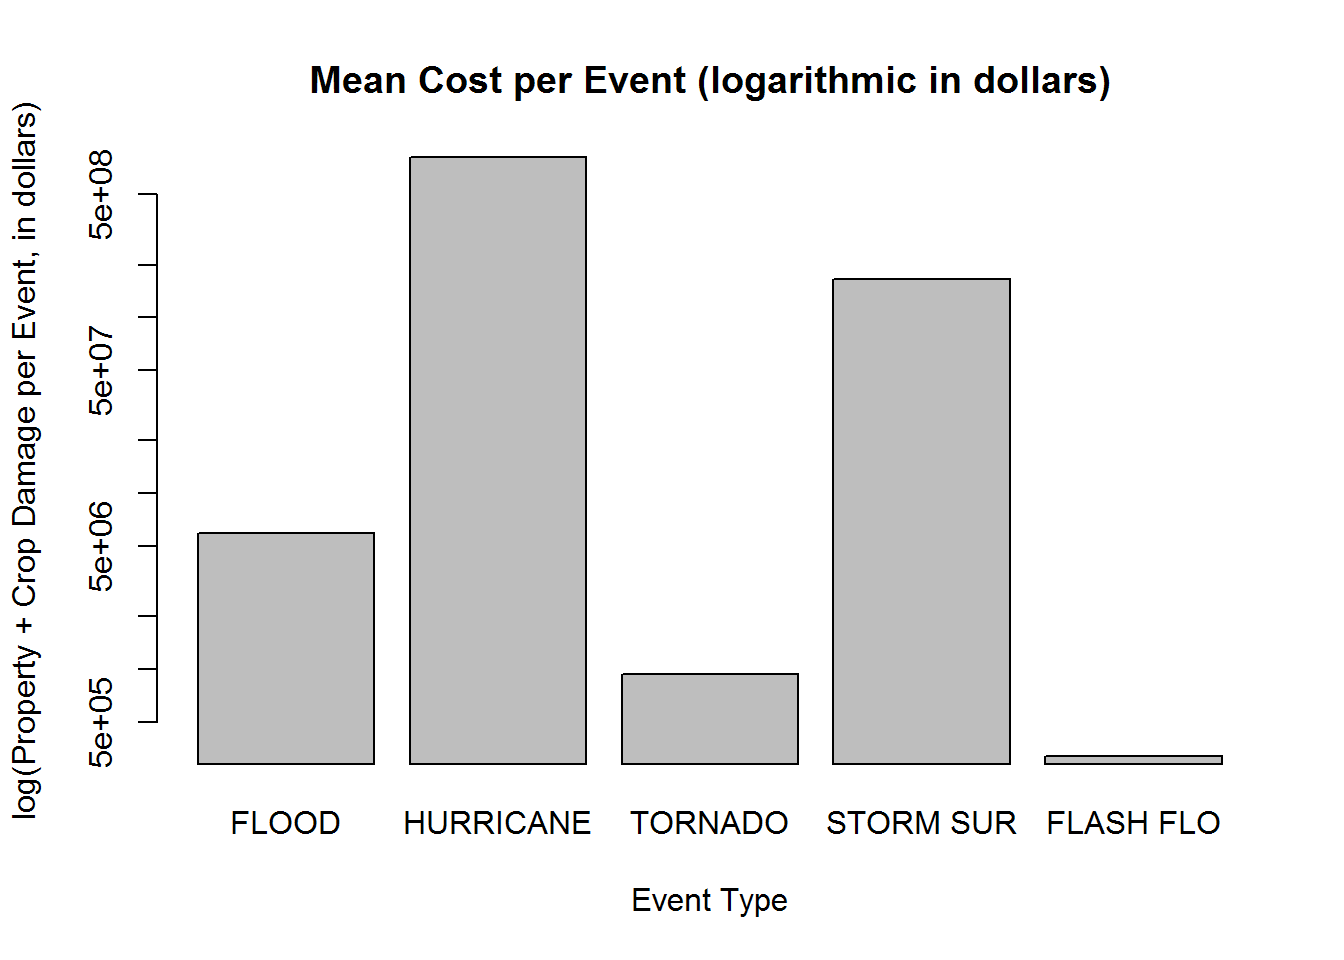 Economic Effects of Weather Events with R